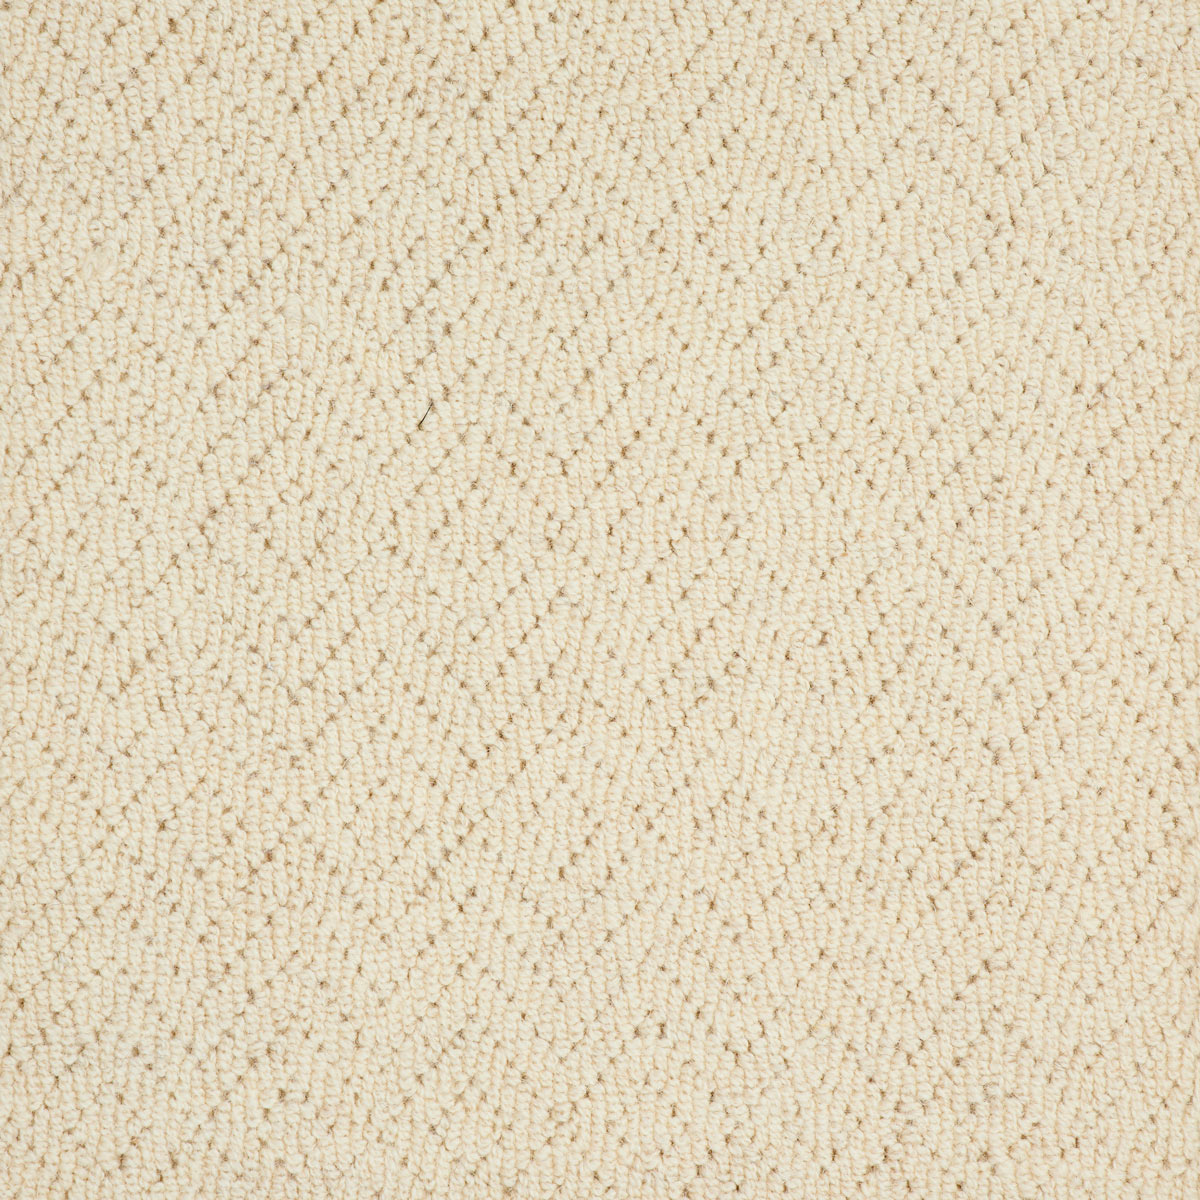 warby-creek_wool_broadloom_patterson-flynn-martin_pfm